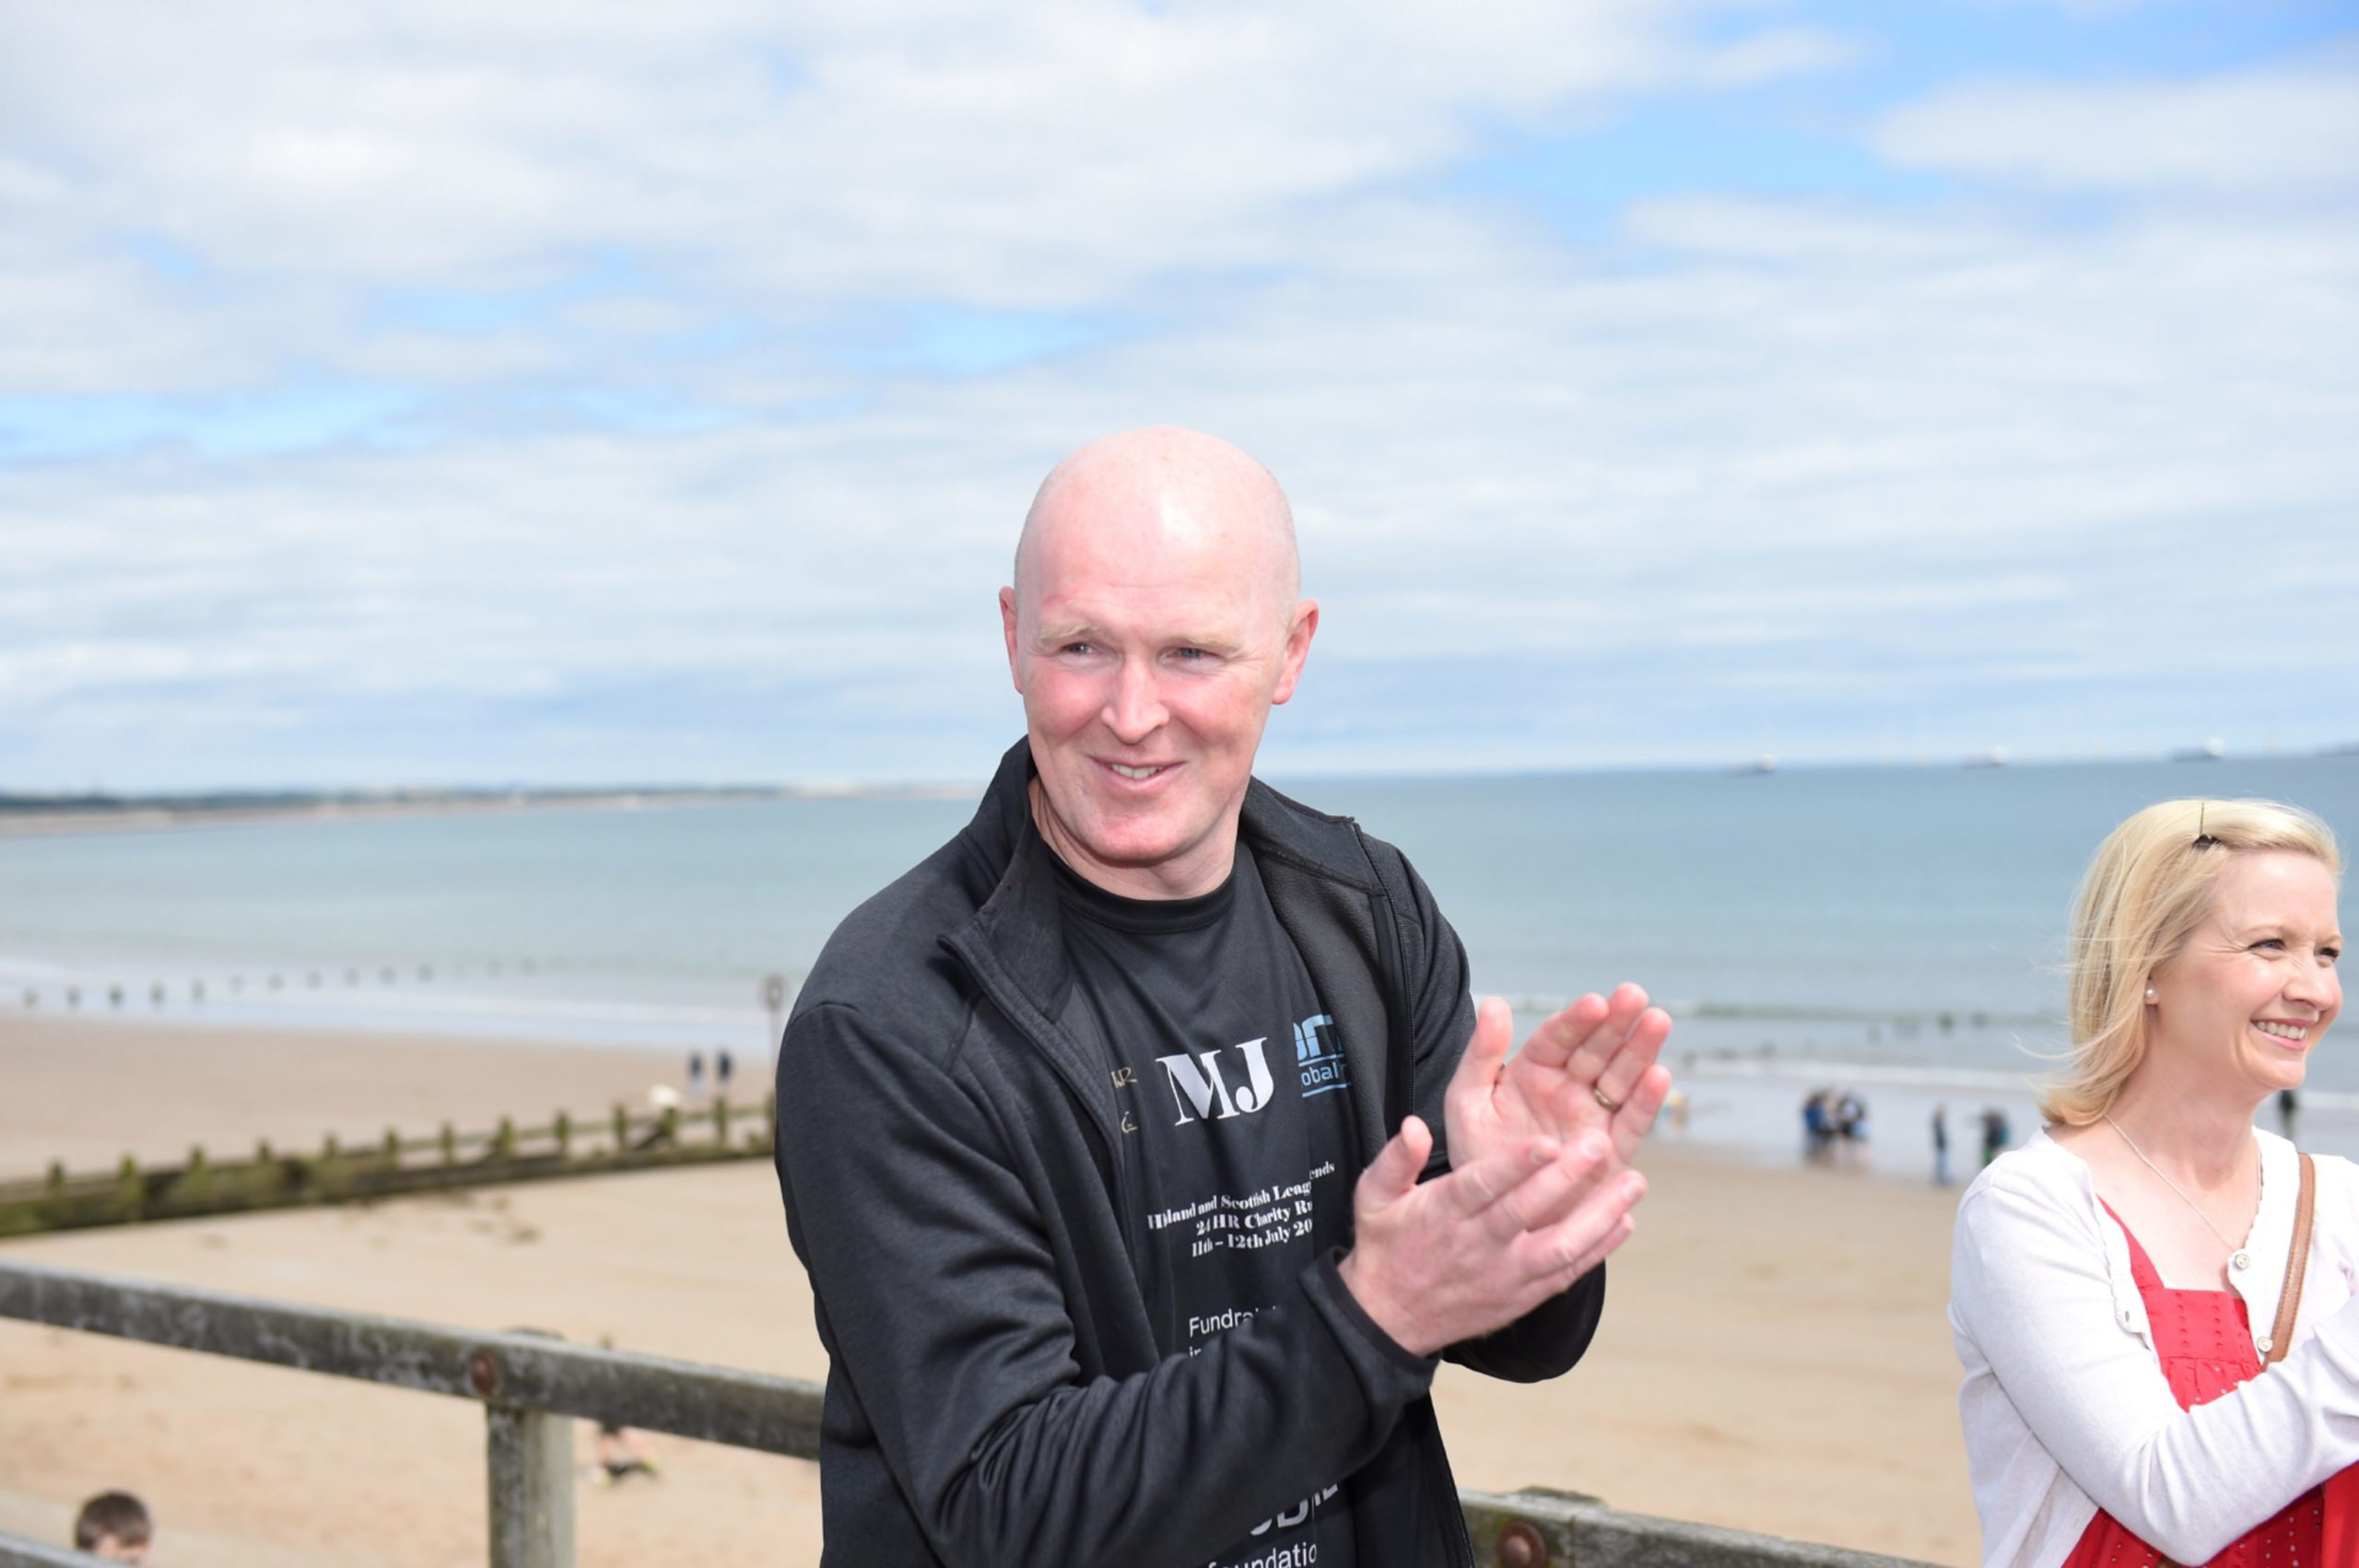 MND-SMART: Former footballer among those to sign up for north-east drug trials - Aberdeen Evening Express